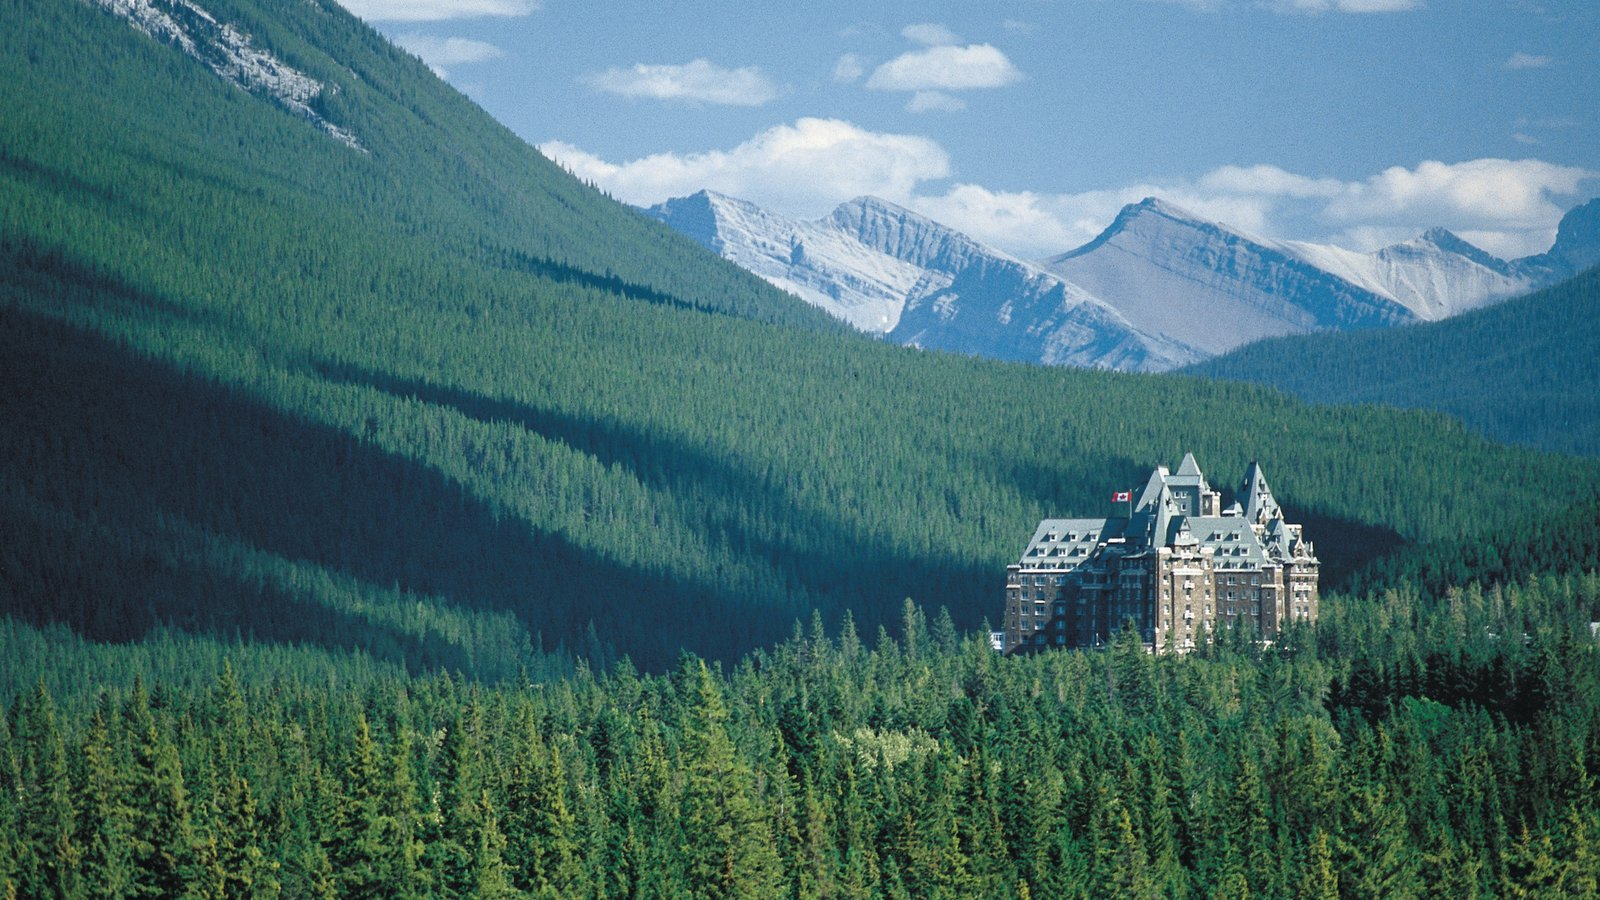 Banff National Park which includes mountains, landscape views and a castle